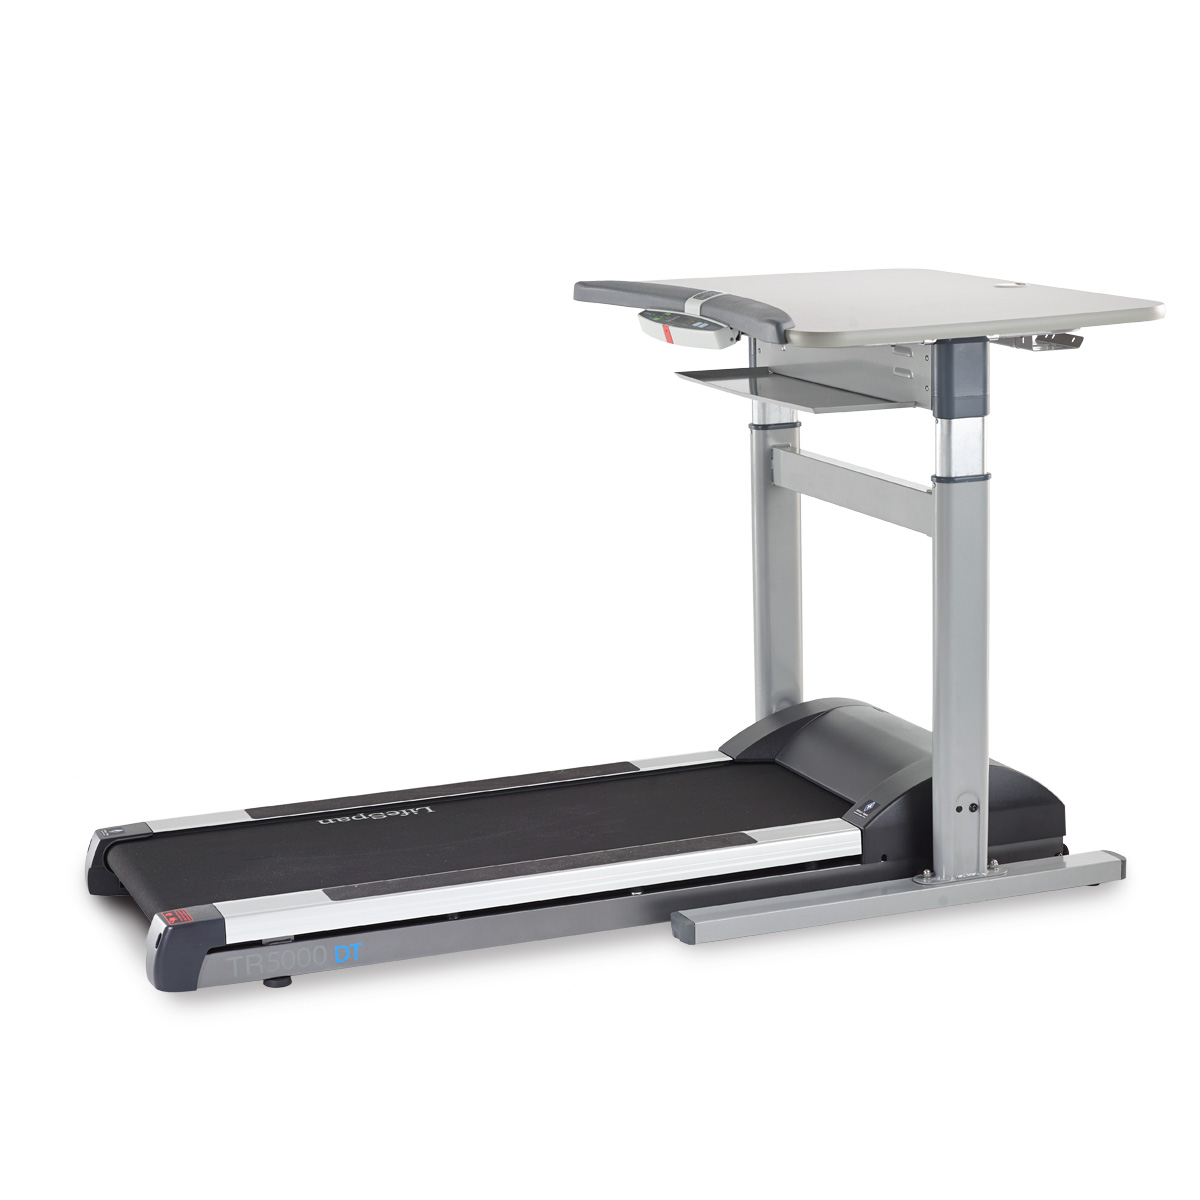 Review of LifeSpan TR1200-DT5 Treadmill Desk